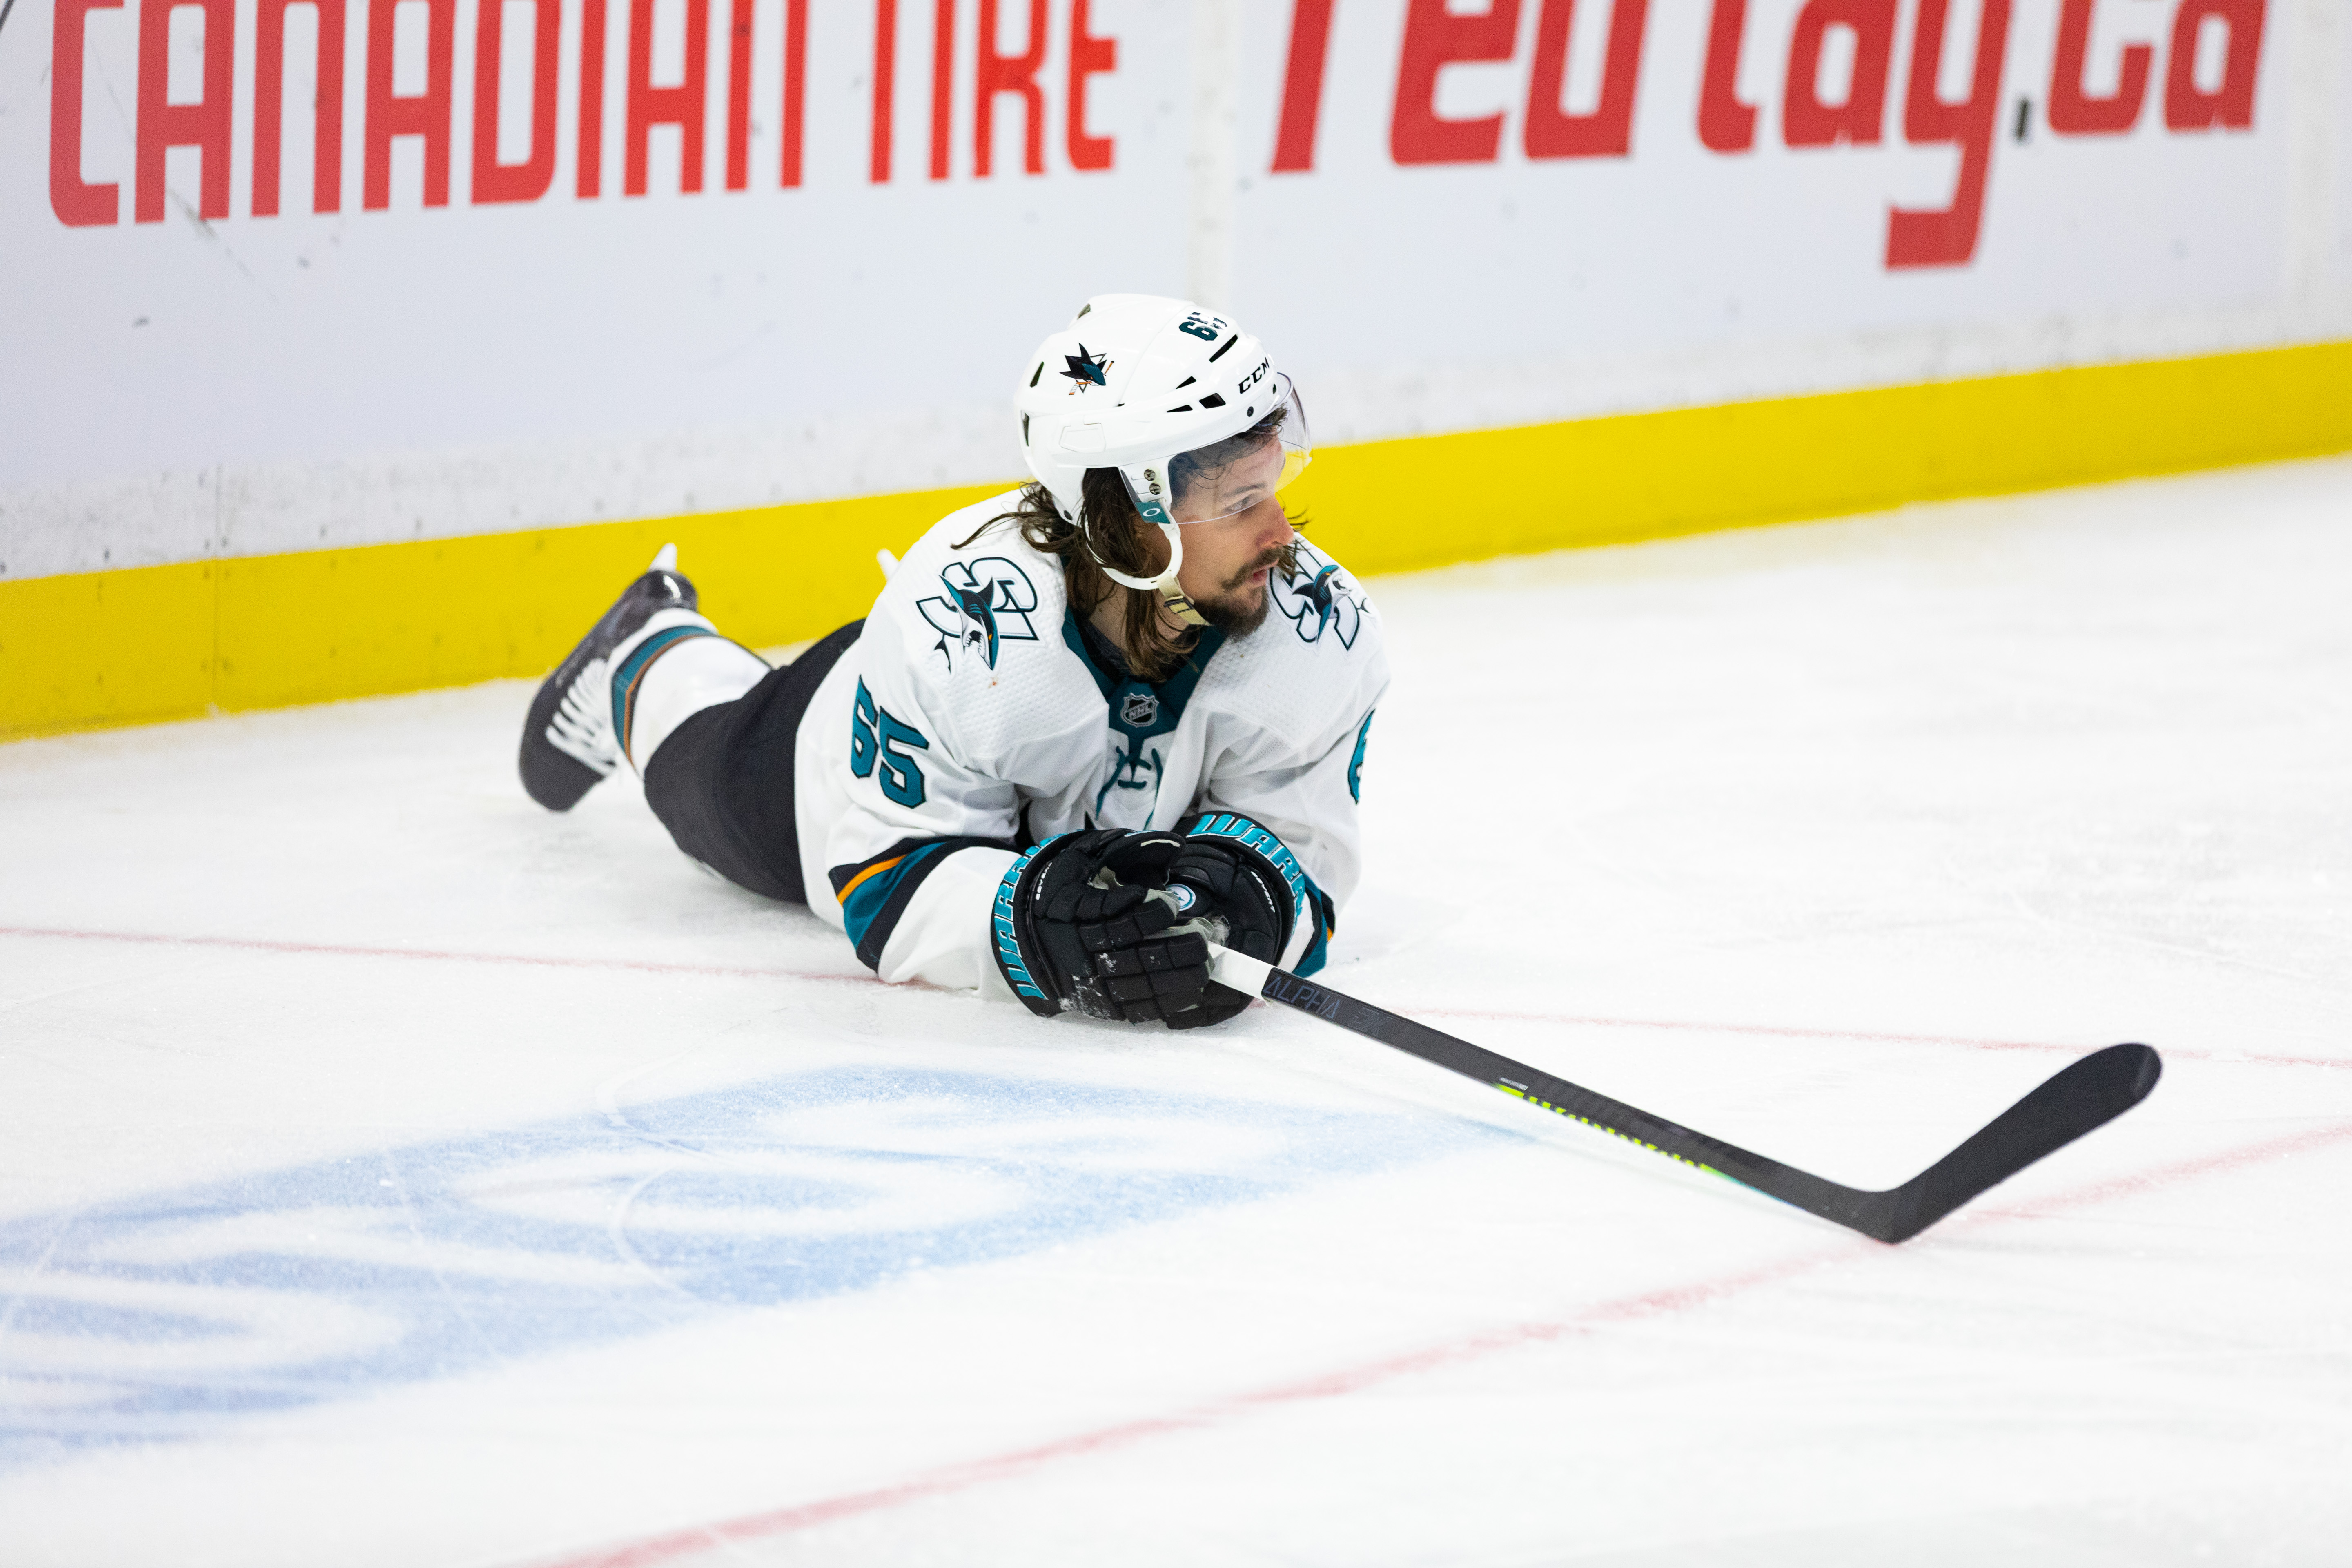 San Jose Sharks defenseman Erik Karlsson (65) lays on the ice after a hit during second period National Hockey League action between the San Jose Sharks and Ottawa Senators on October 27, 2019, at Canadian Tire Centre in Ottawa, ON, Canada.